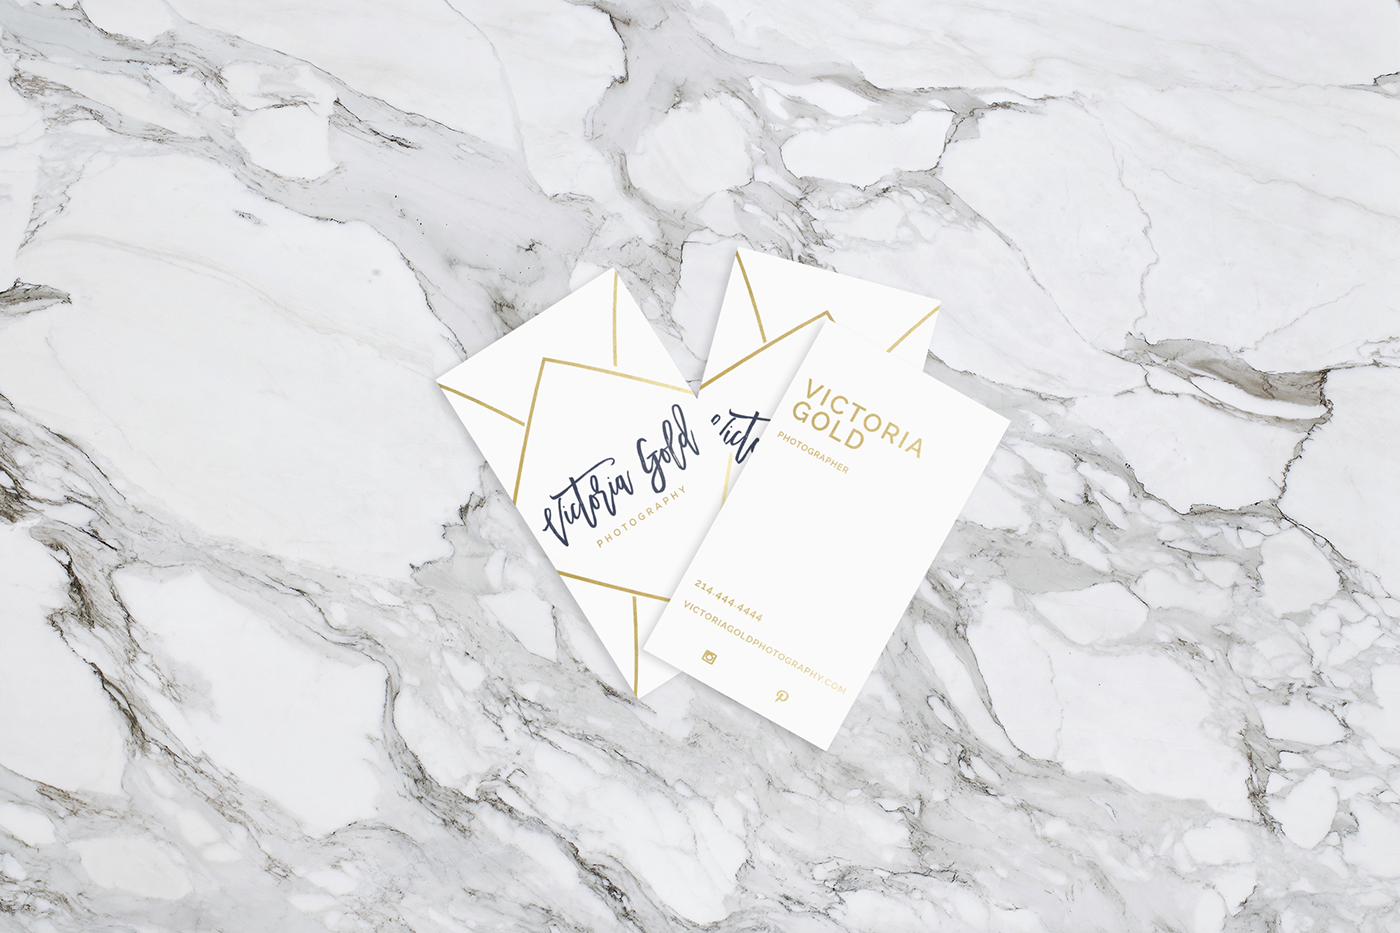 Victoria Gold Photography Business Cards on Behance